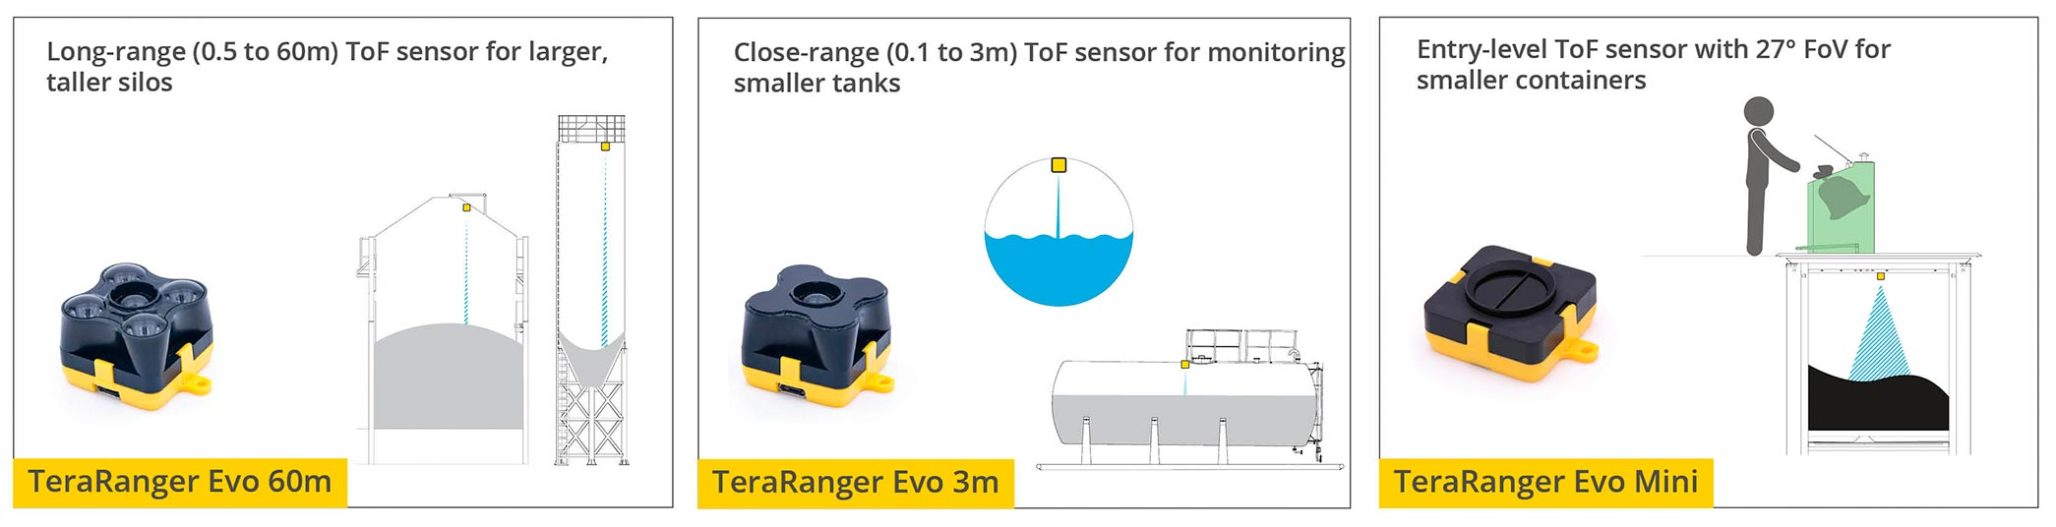 Silo Level Monitoring Sensors